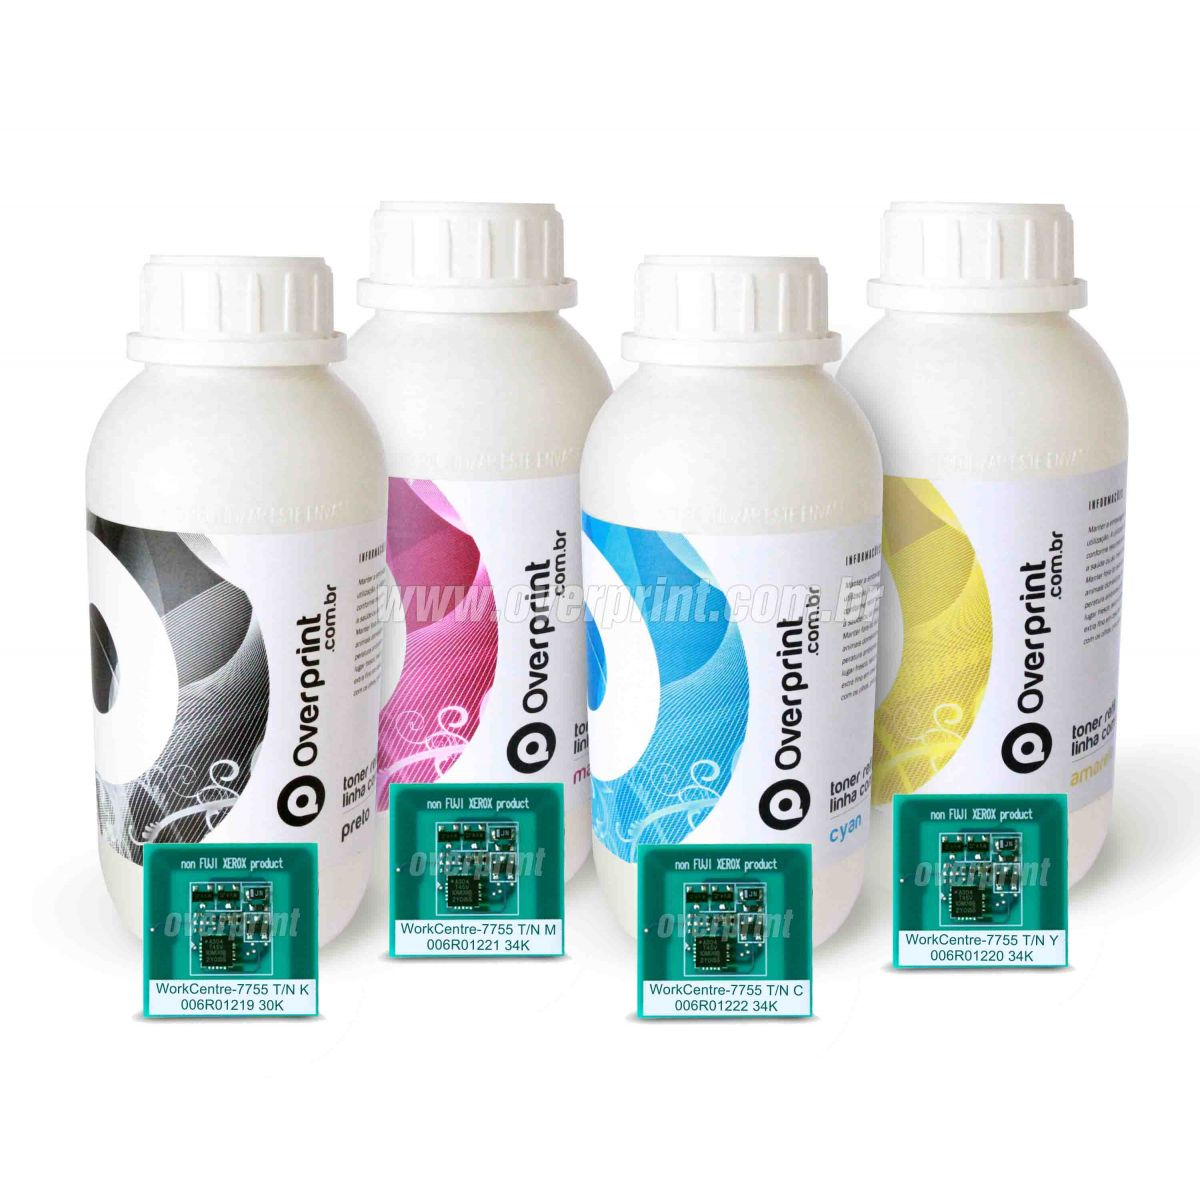 Kit Refil de Toner 4 cores + 4 Chips Xerox WorkCentre 7755/7765/7775 - Overprint